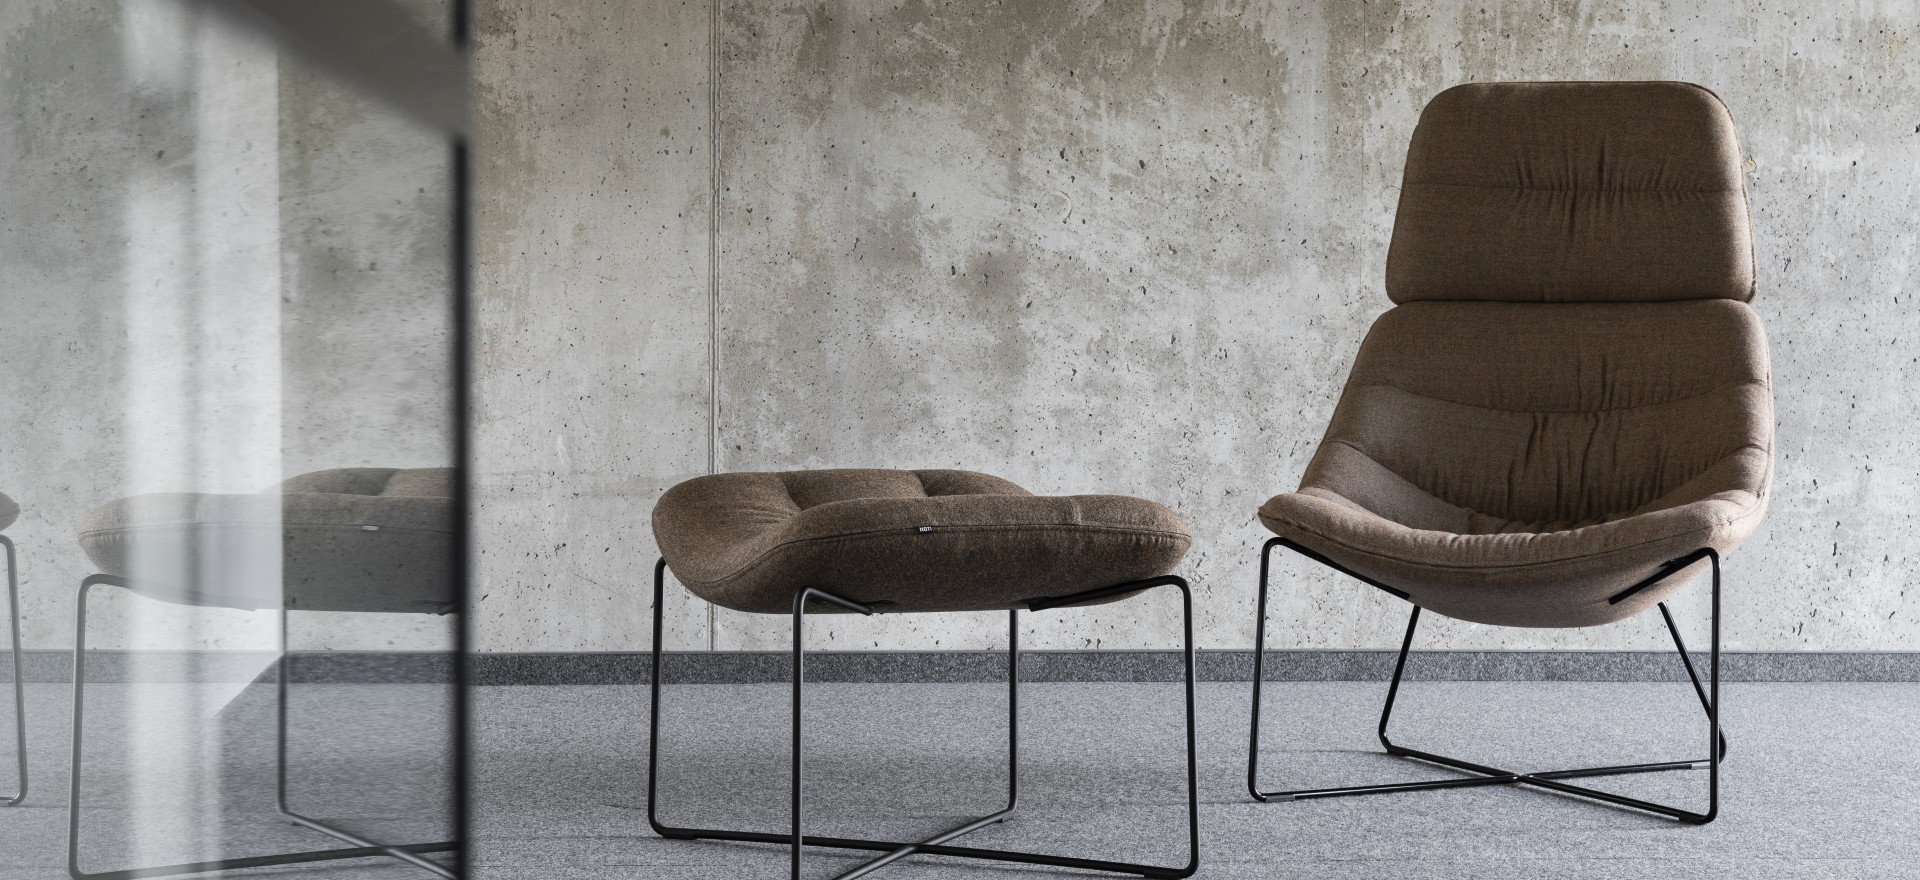 mishell soft armchair footrest